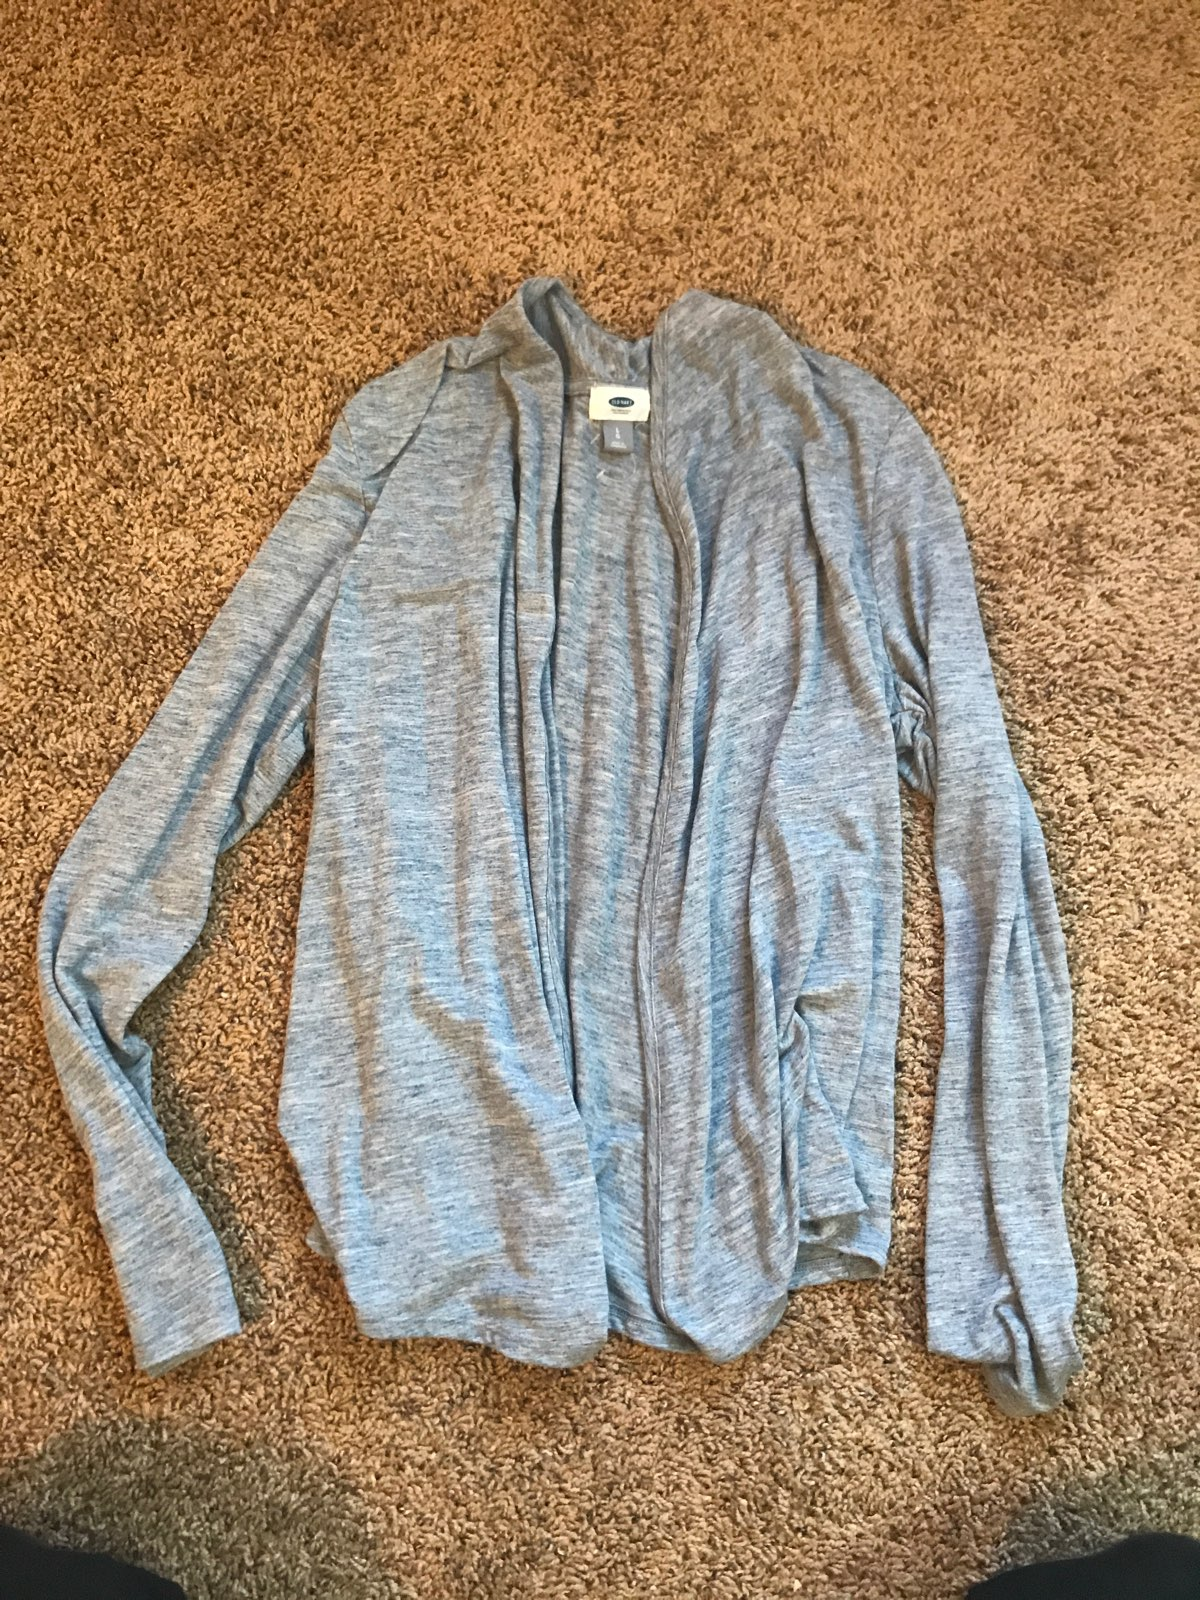 Heather Blue Sweater - Mercari: BUY & SELL THINGS YOU LOVE